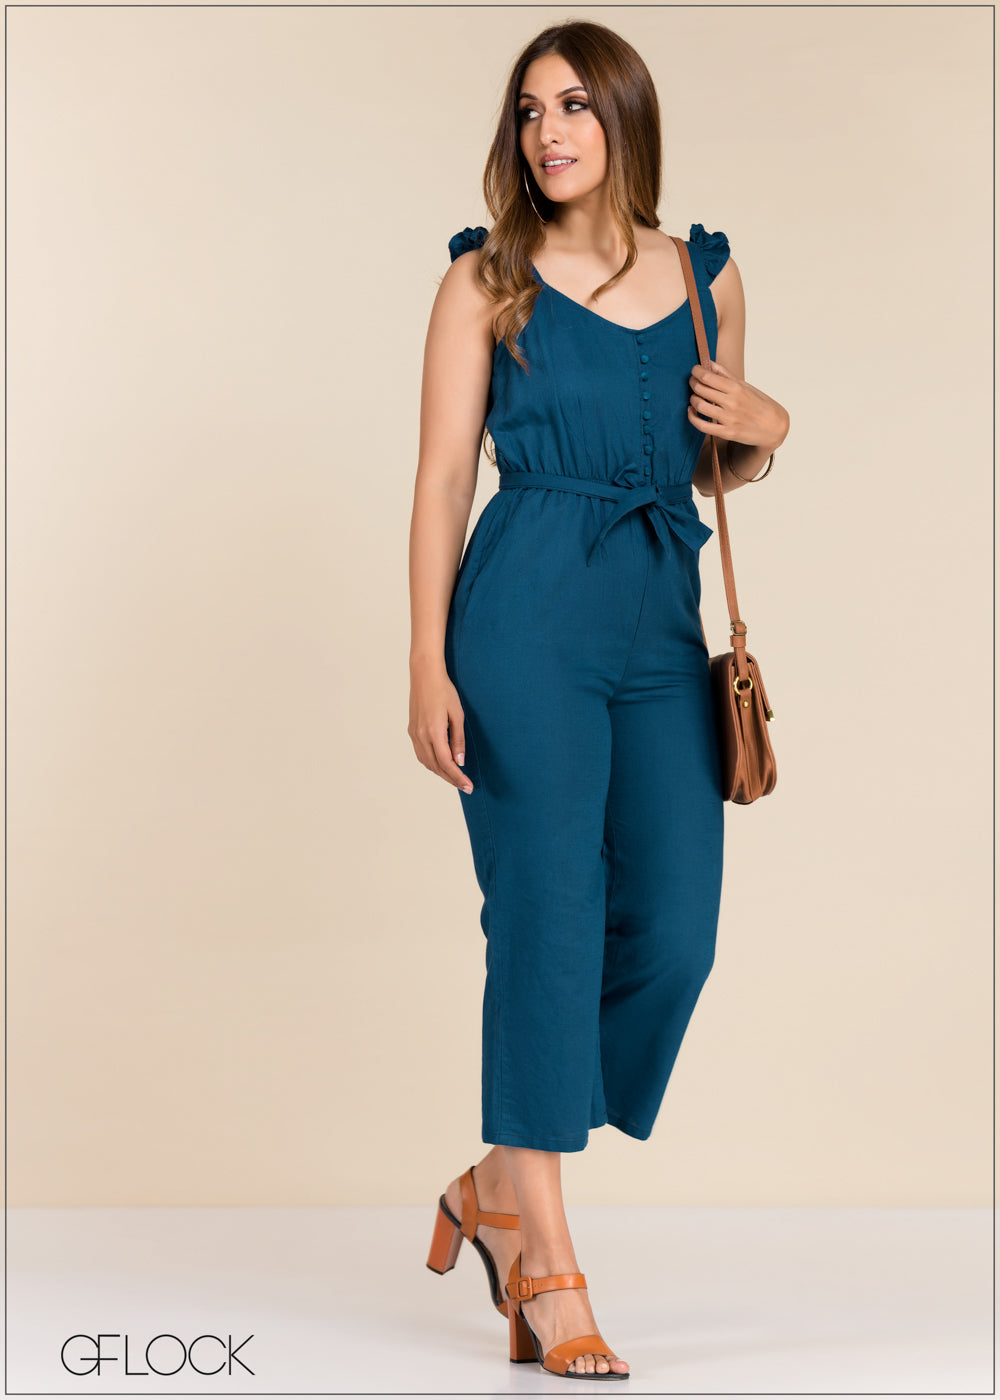 Jumpsuit With Waist Tie - GFLOCK.LK